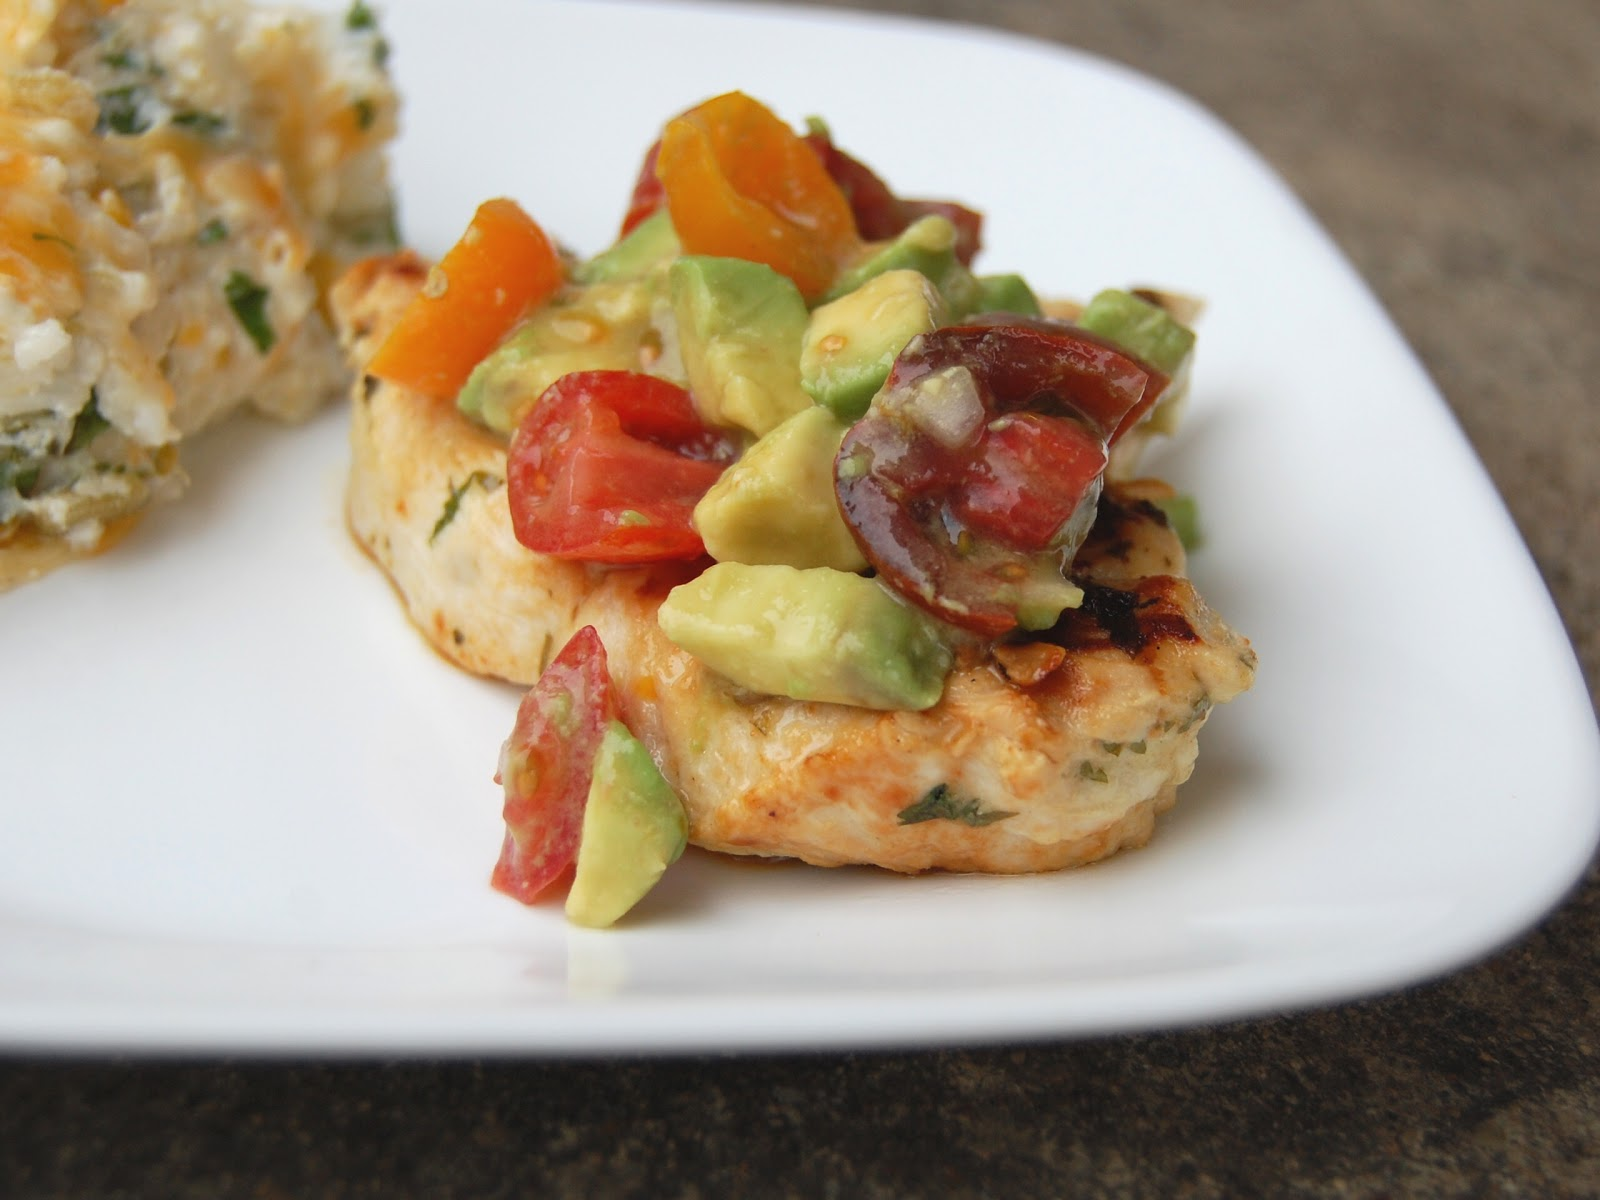 Cassie Craves: Grilled Cilantro-Lime Chicken with Avocado Salsa